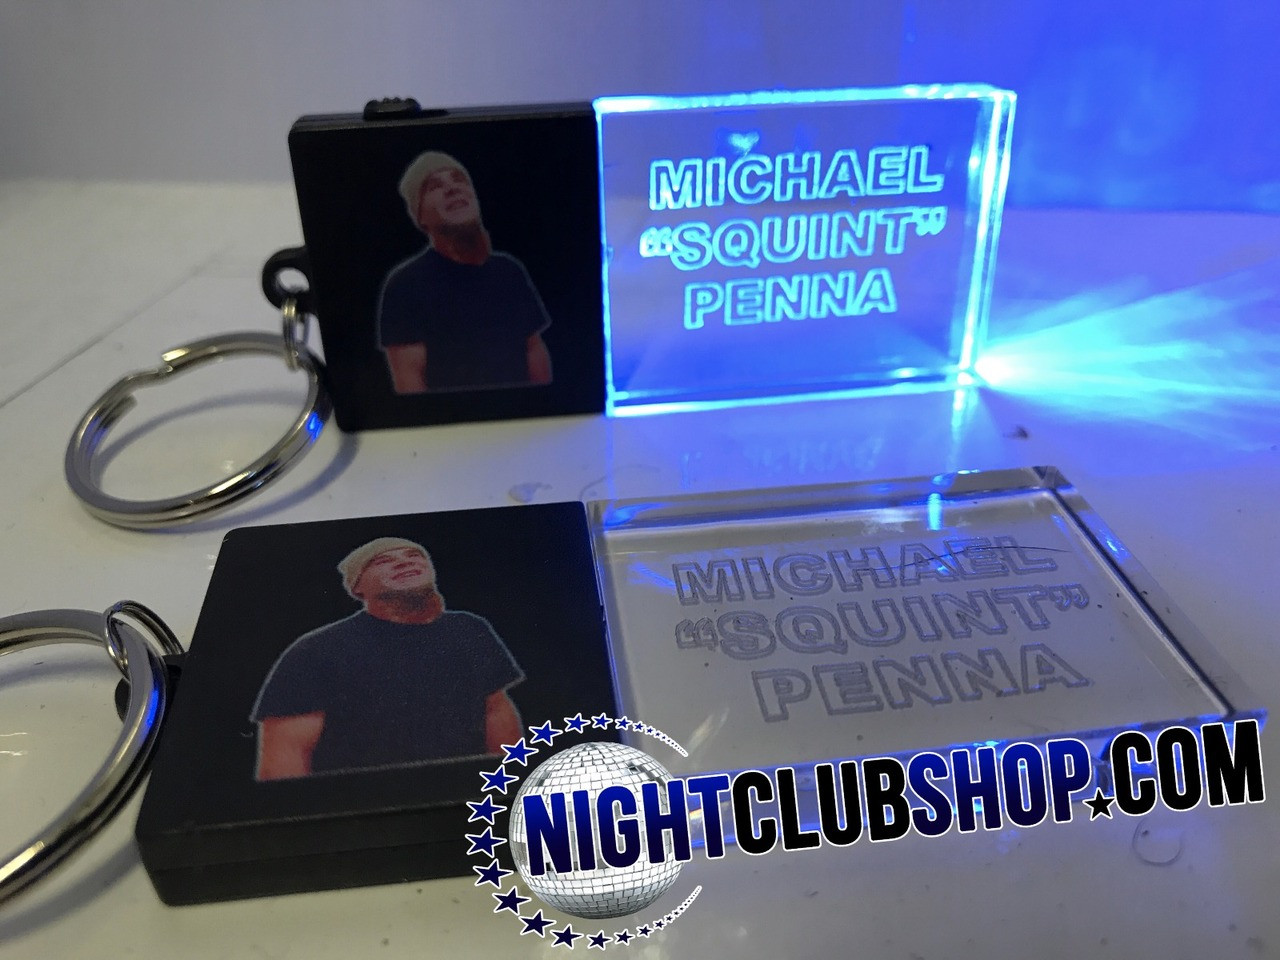 DUO-BEAM LED KEY CHAIN - Light Up Optical Engraved Keychain, Dual Customized Full Color Print and Laser Engraved Promo